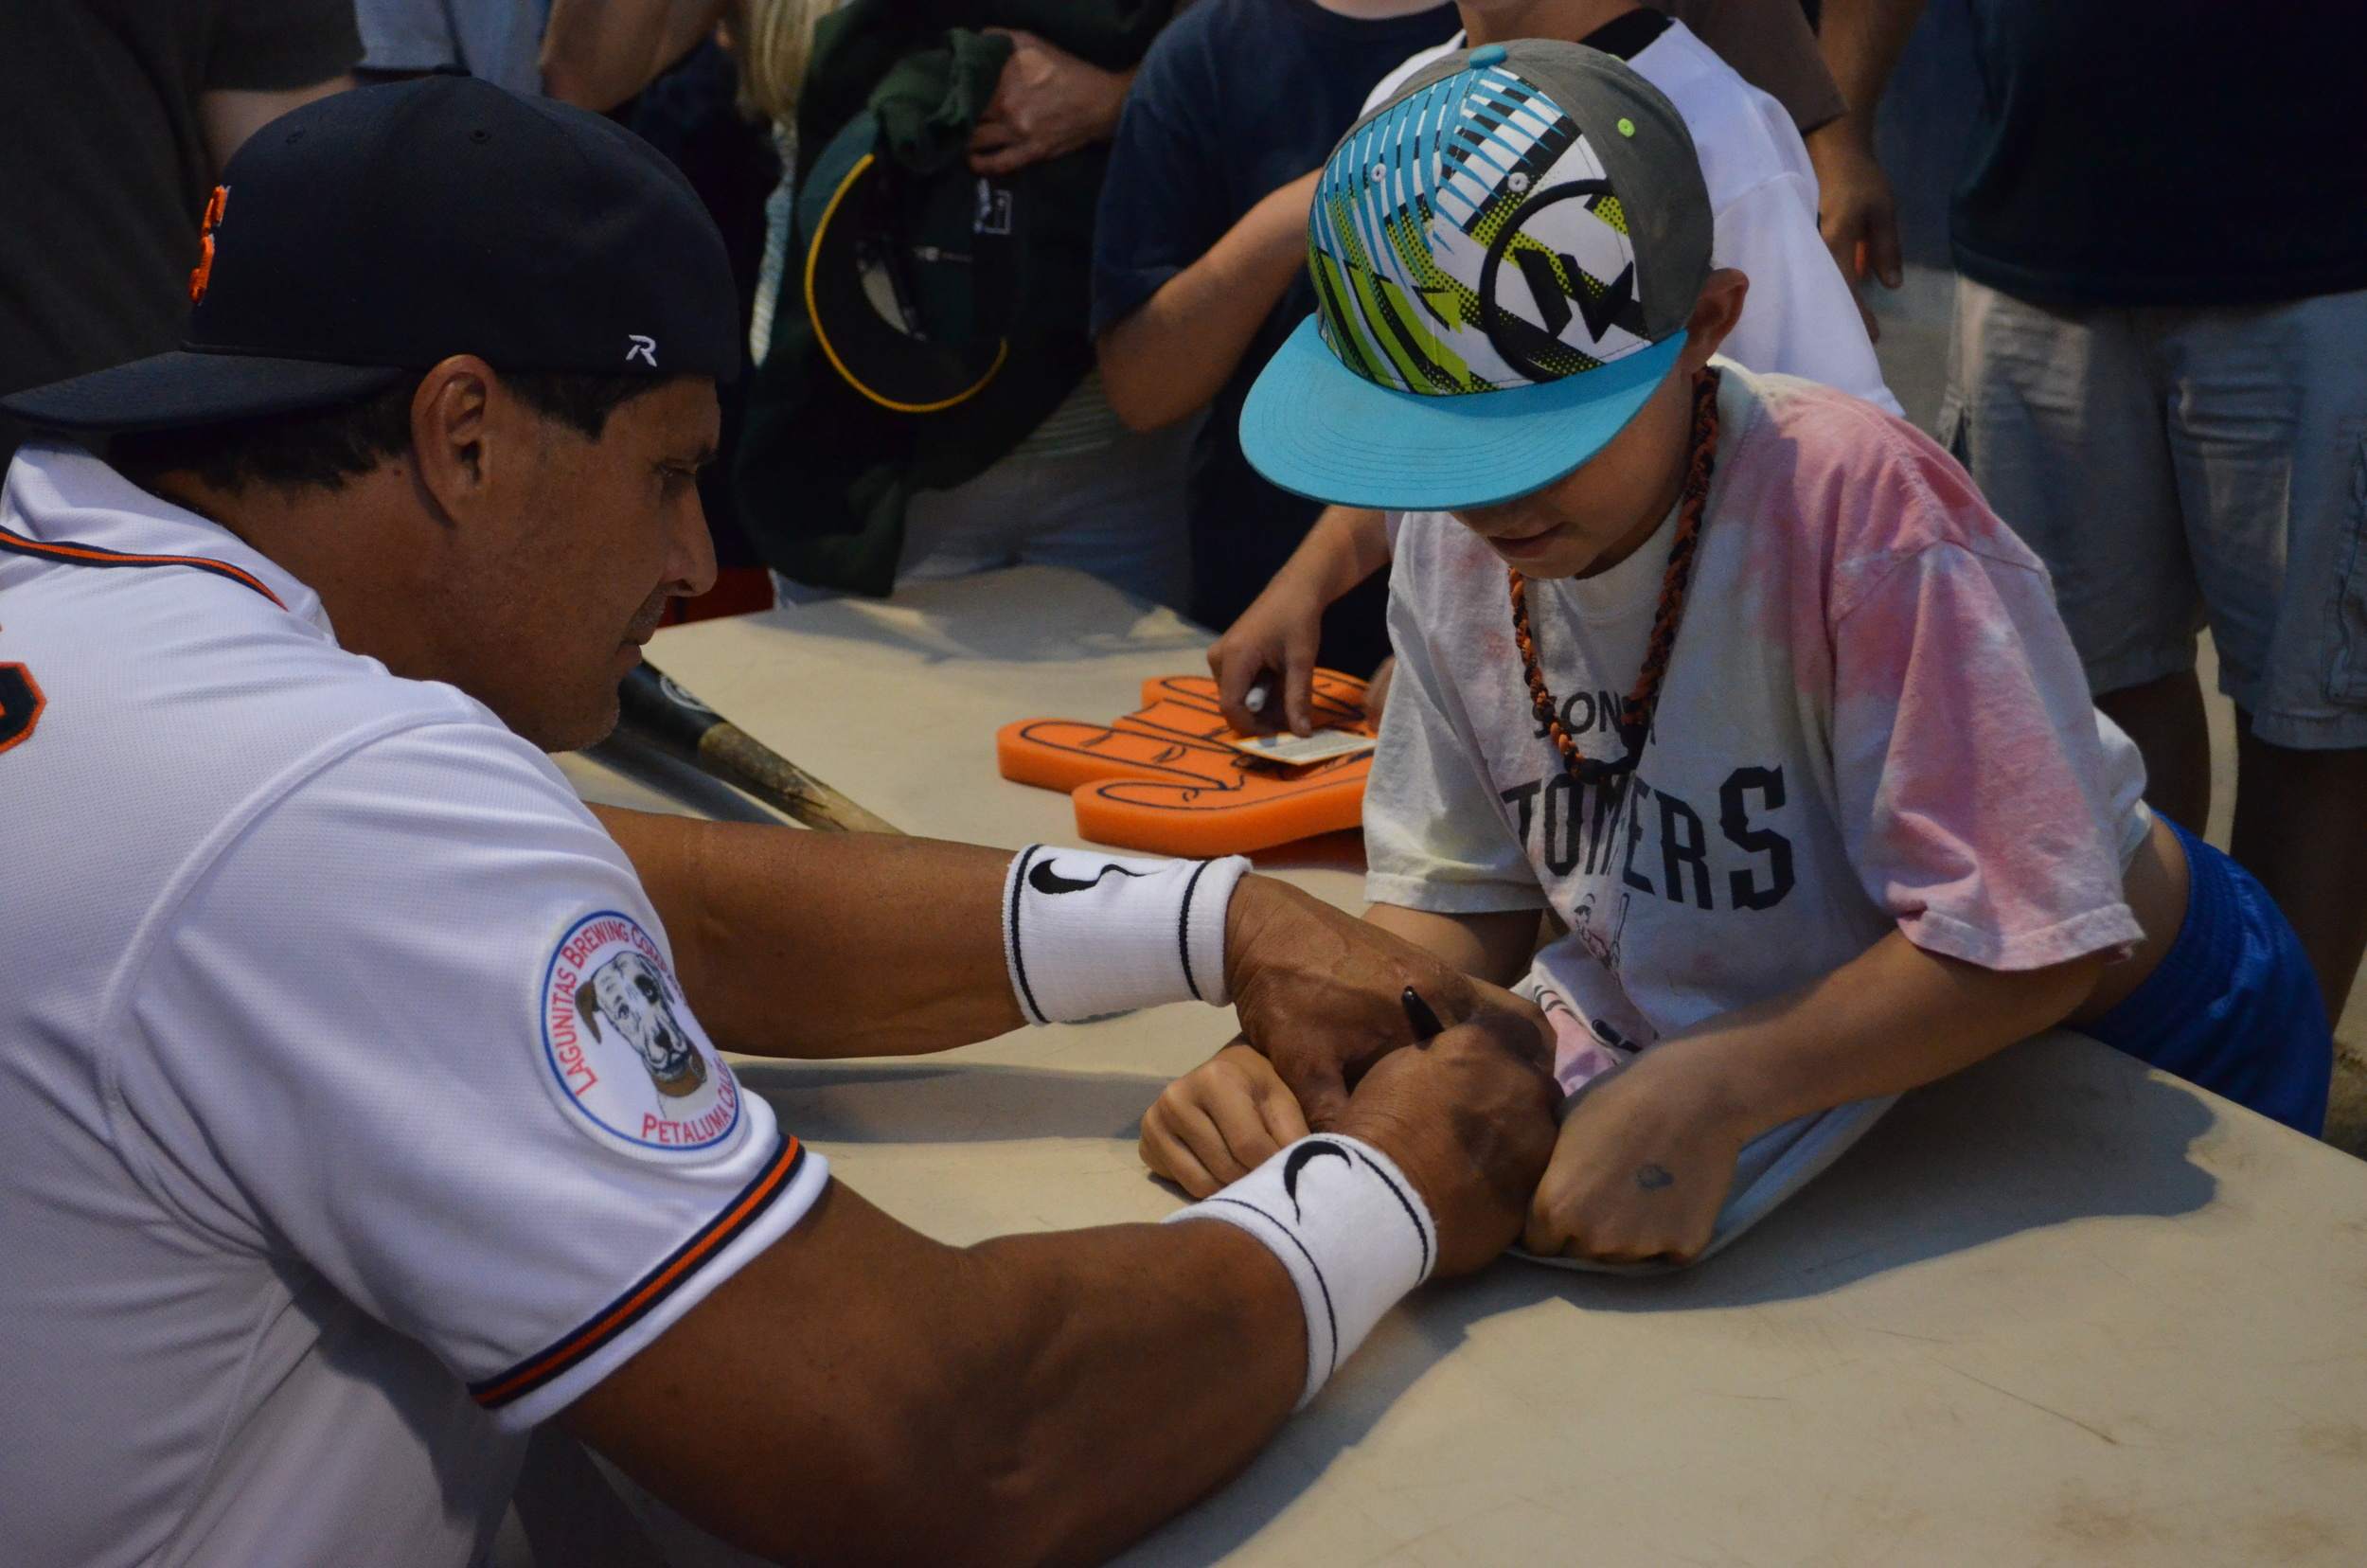 Jose Canseco signs an autograph for a young fan at Arnold Field.   James Toy III/Sonoma Stompers